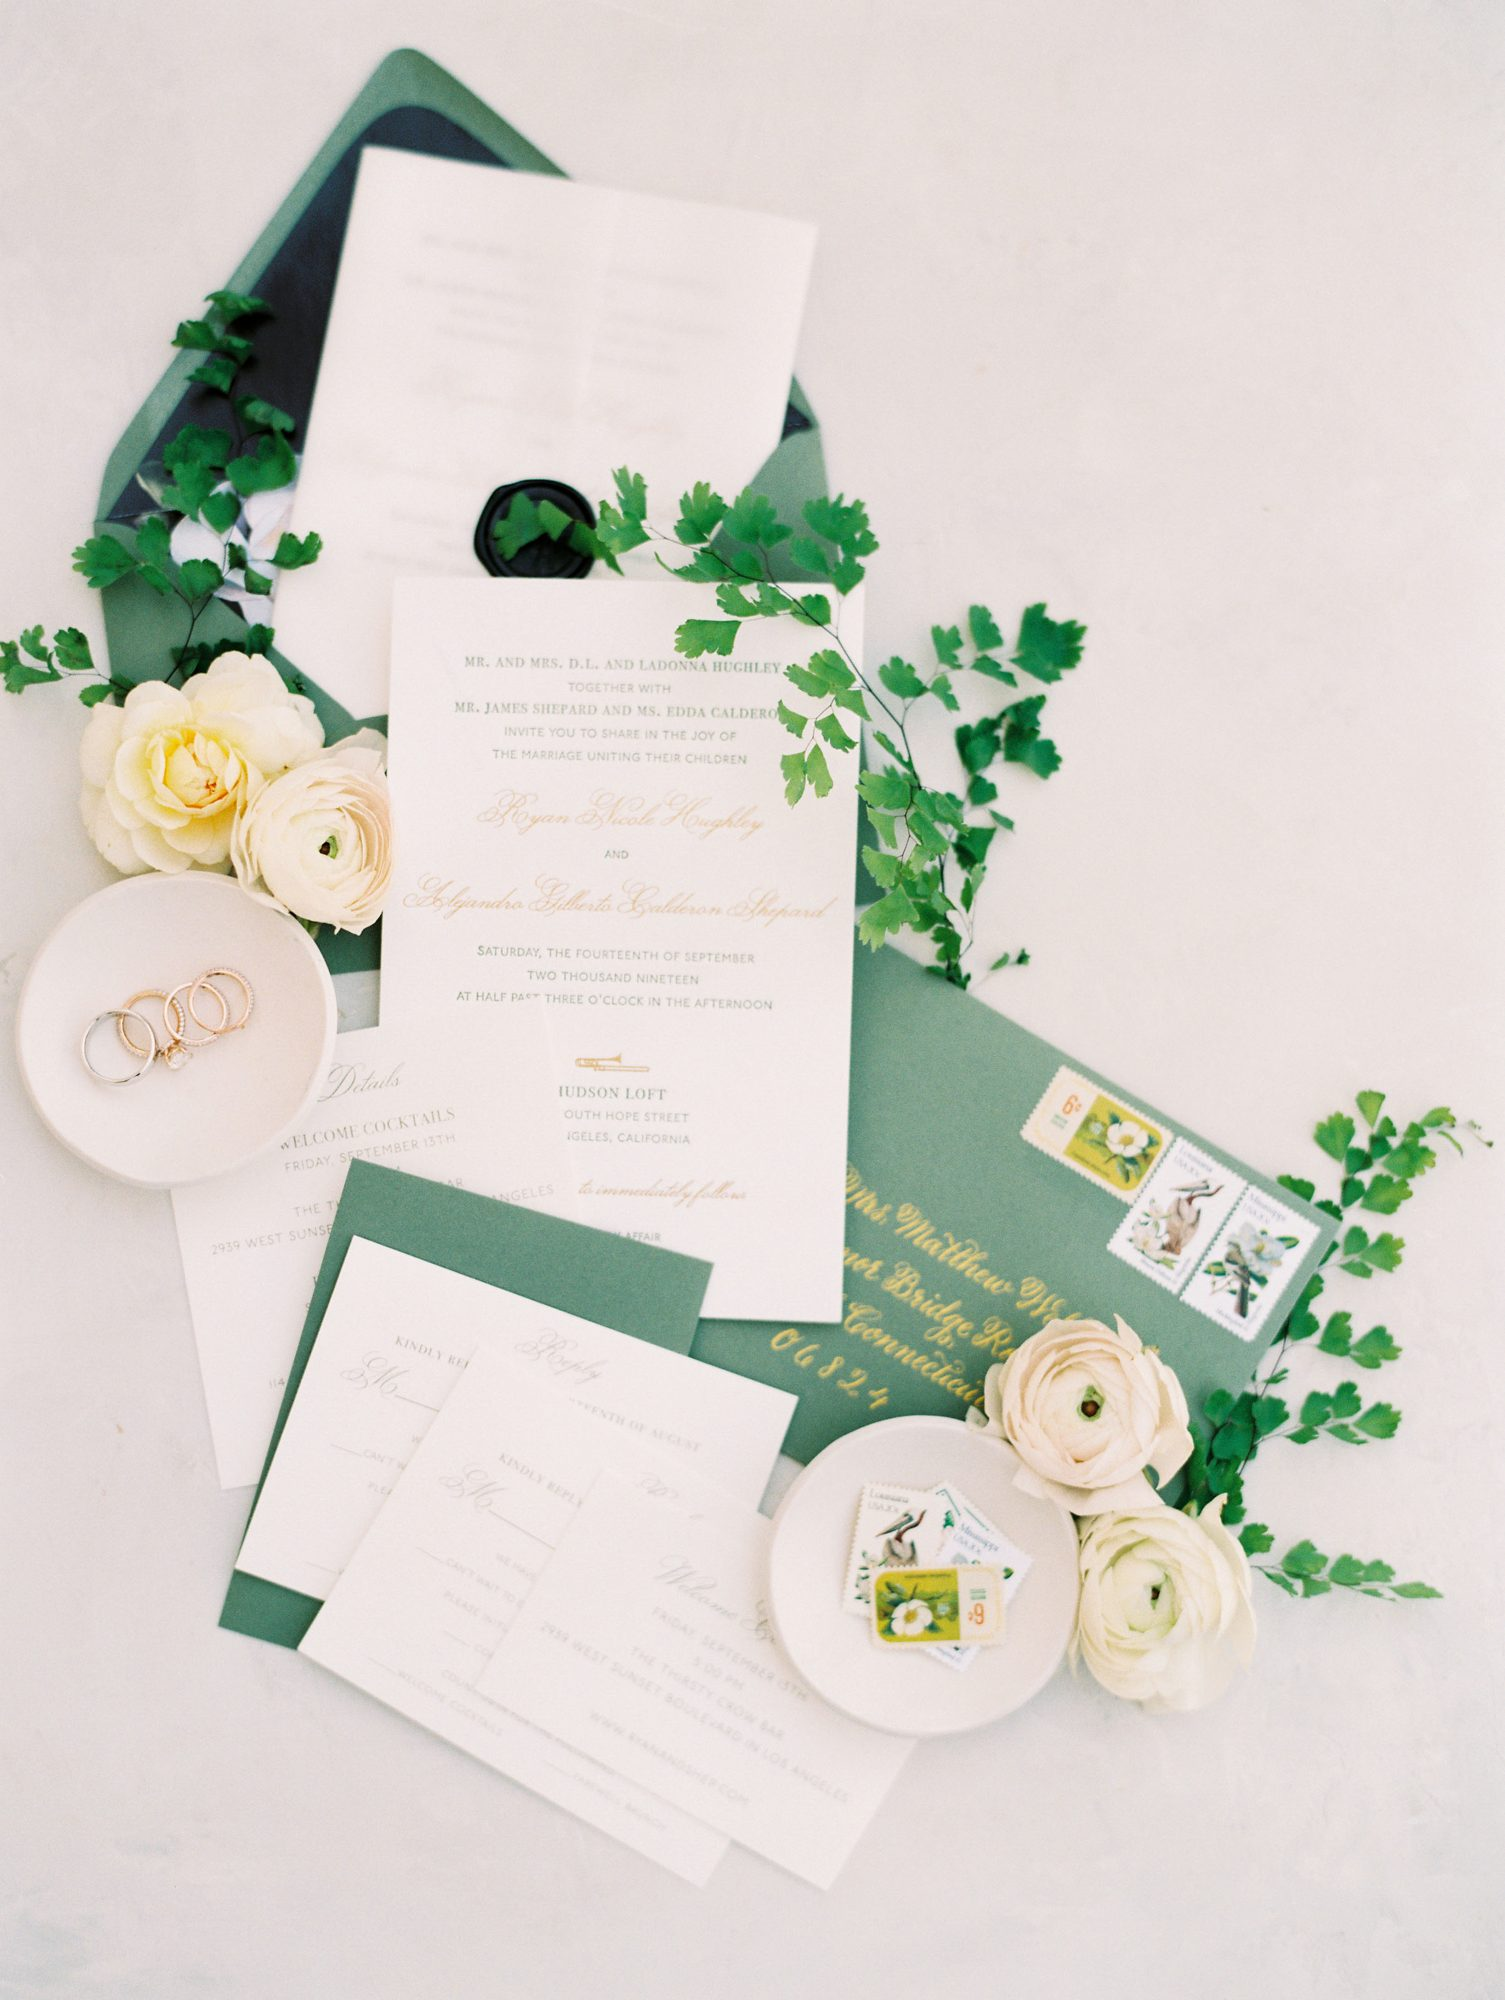 ryan shep wedding invitations surrounded by jewelry and floral decor